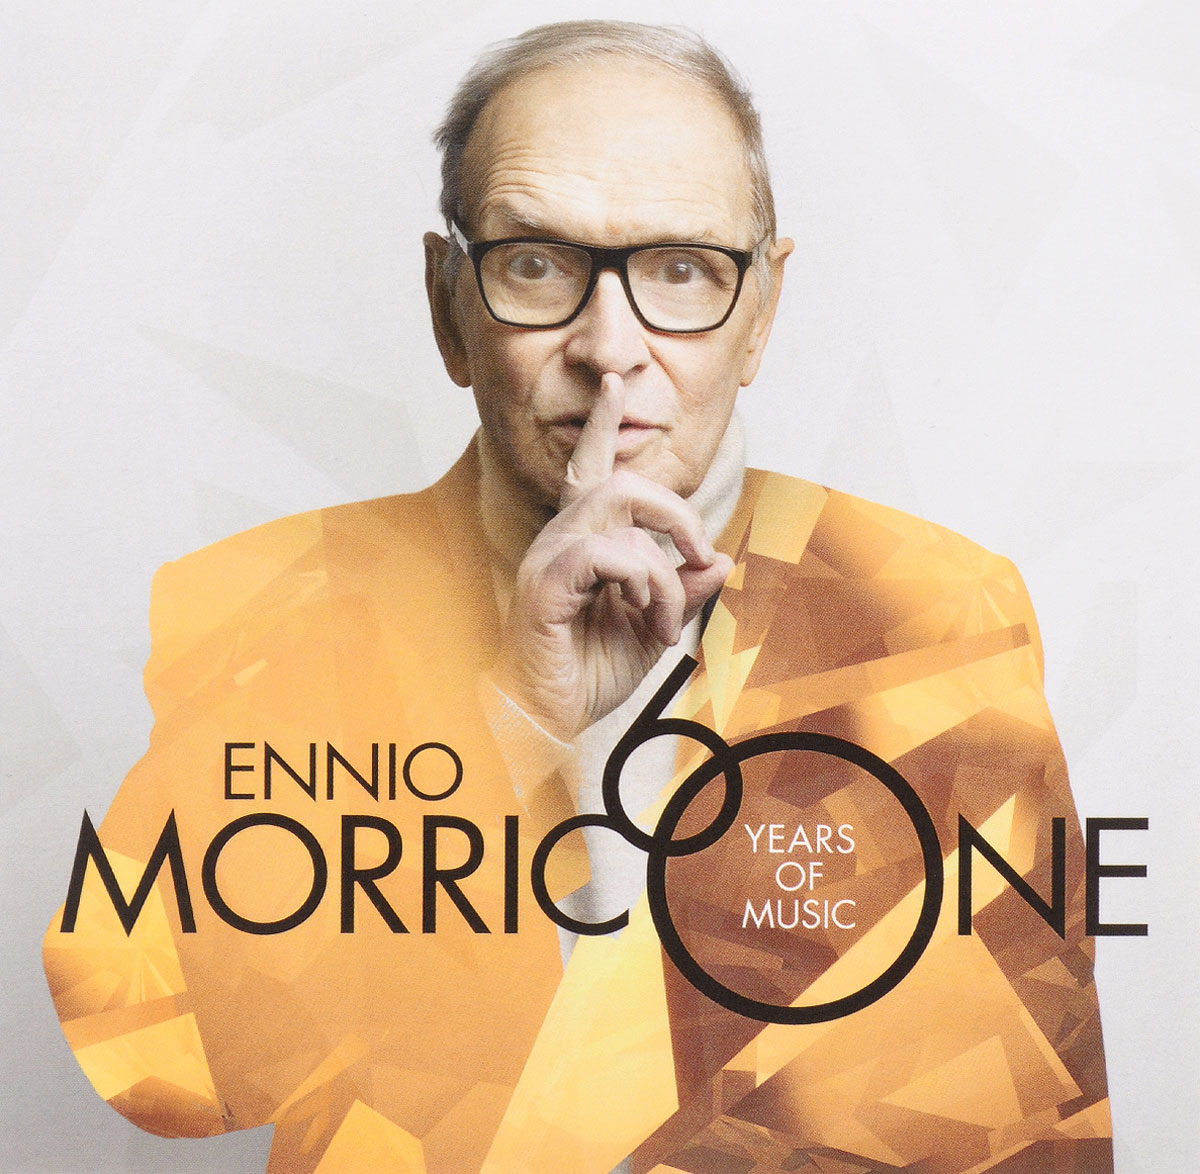 Эннио Морриконе Ennio Morricone. Morricone 60 Years Of Music (CD + DVD) ennio morricone jubilee lp